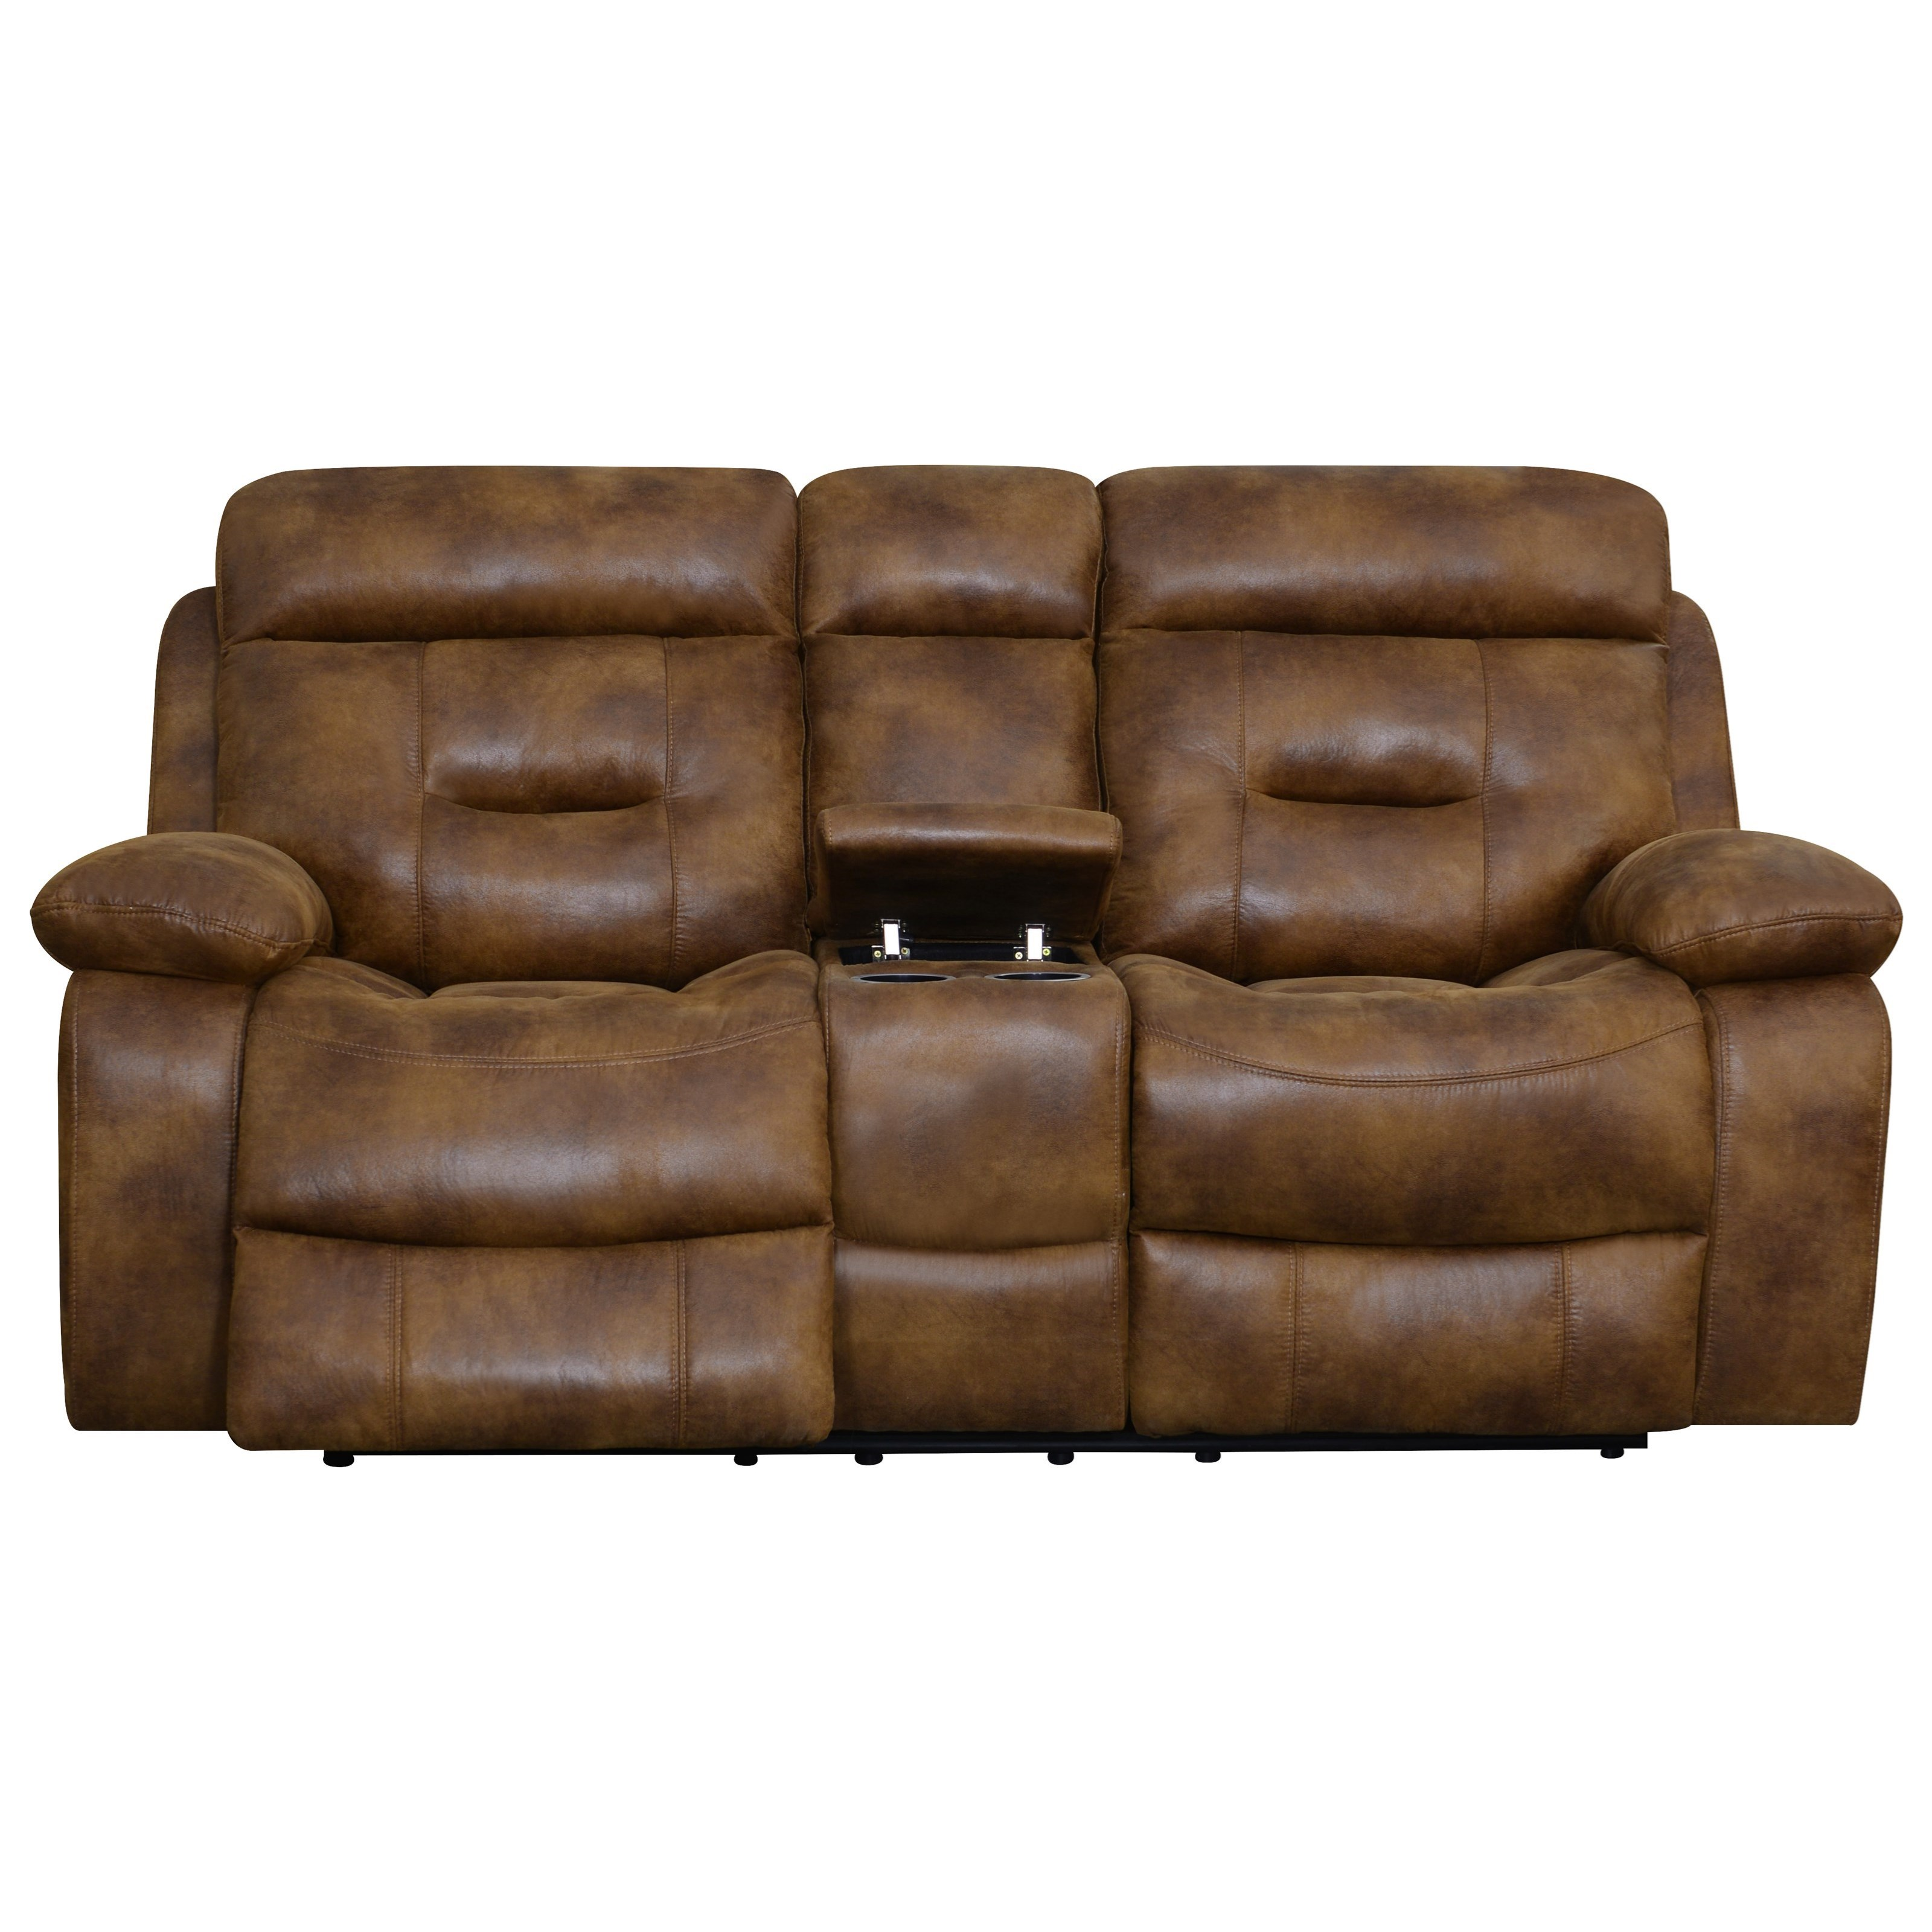 Reclining Loveseat with Storage & Cupholders